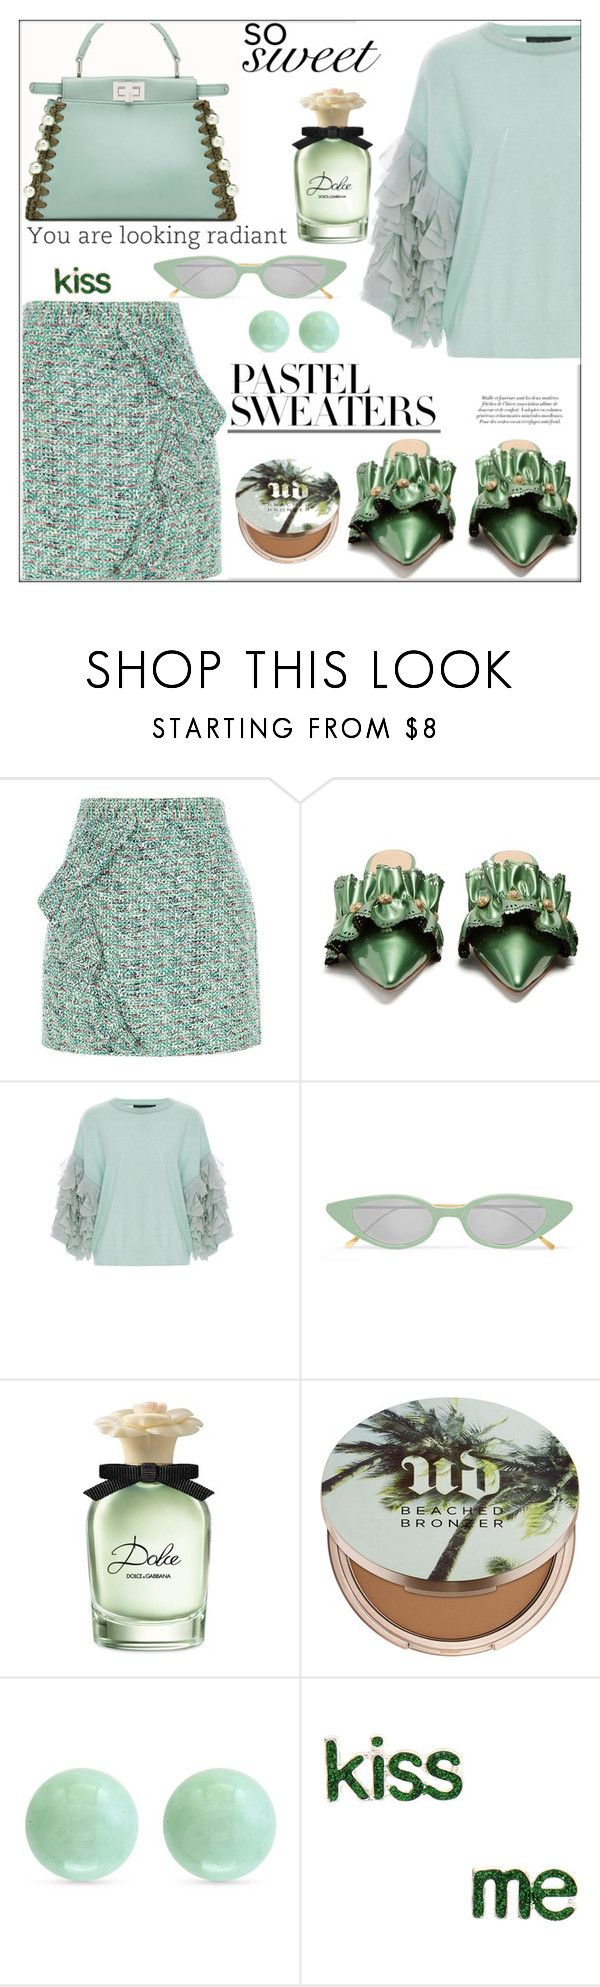 """""""So Sweet: Pastel Sweaters"""" by pat912 on Polyvore featuring River Island, Rue St., Tabula Rasa, Illesteva, Dolce&Gabbana, Urban Decay, Effy Jewelry, polyvoreeditorial and pastelsweaters"""